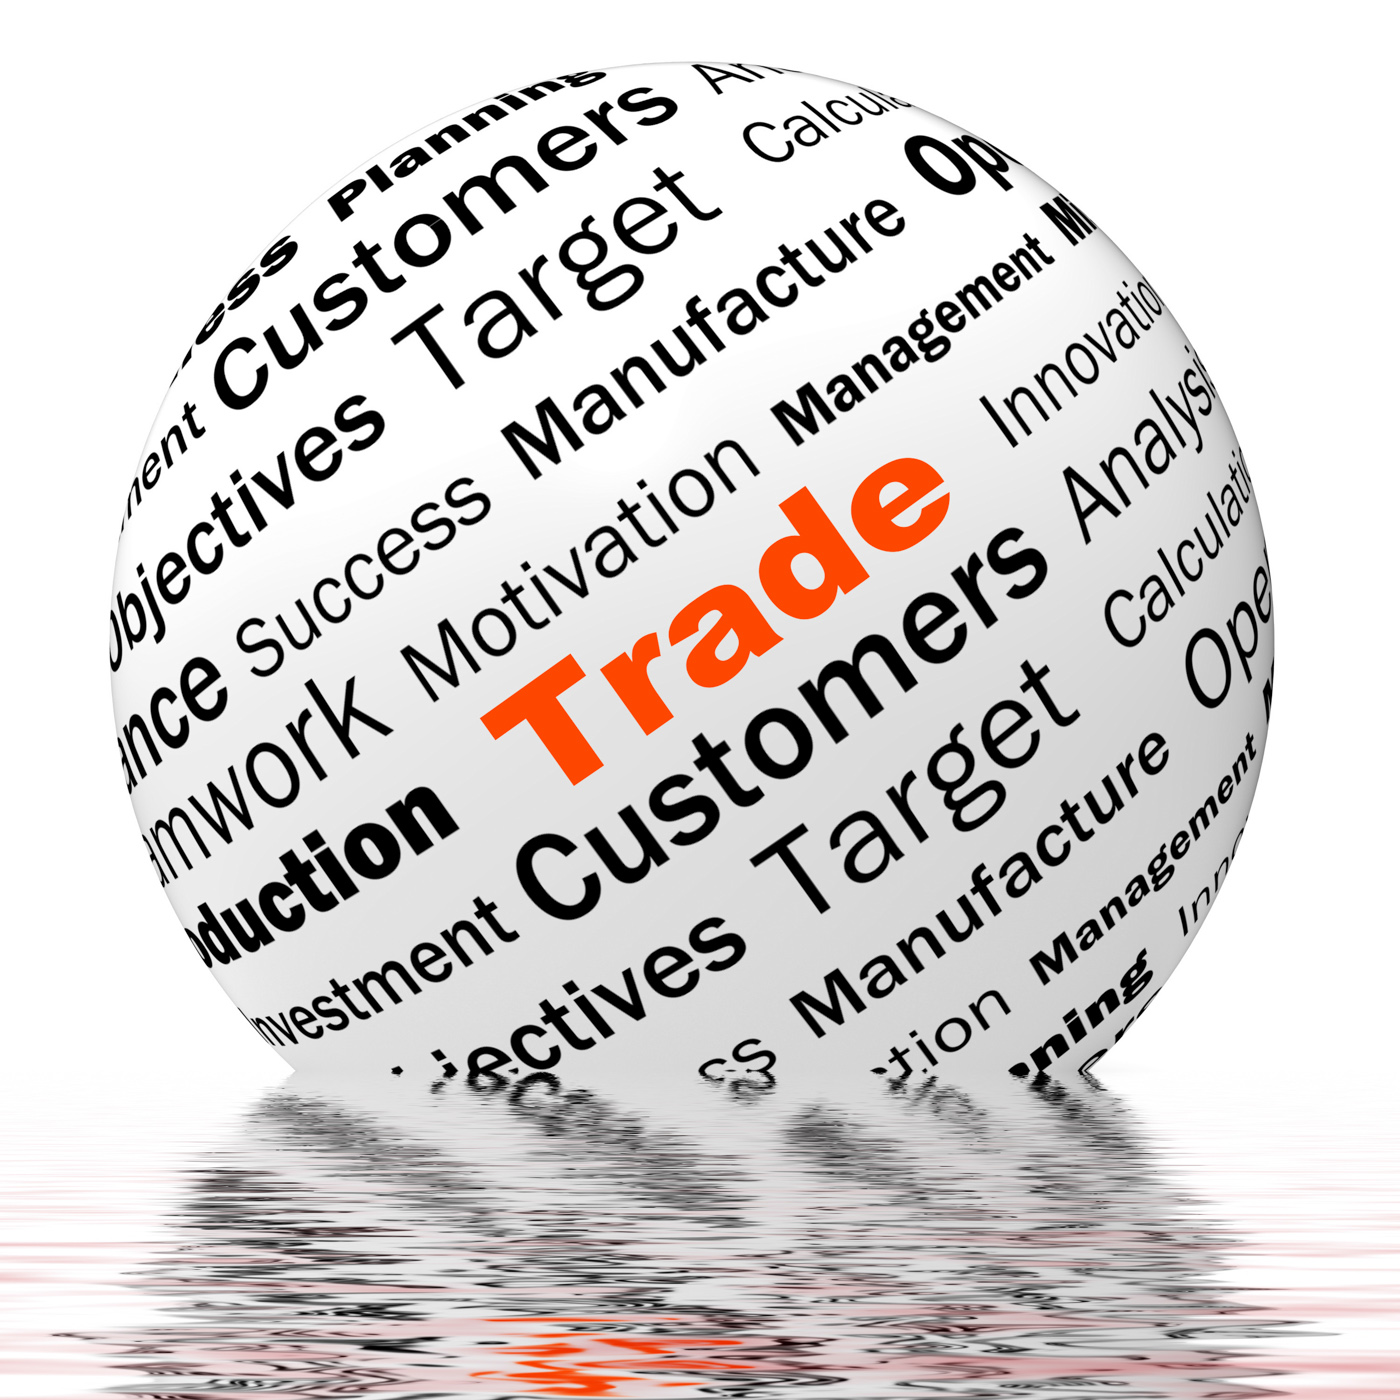 Trade sphere definition displays stock trading or sharing photo